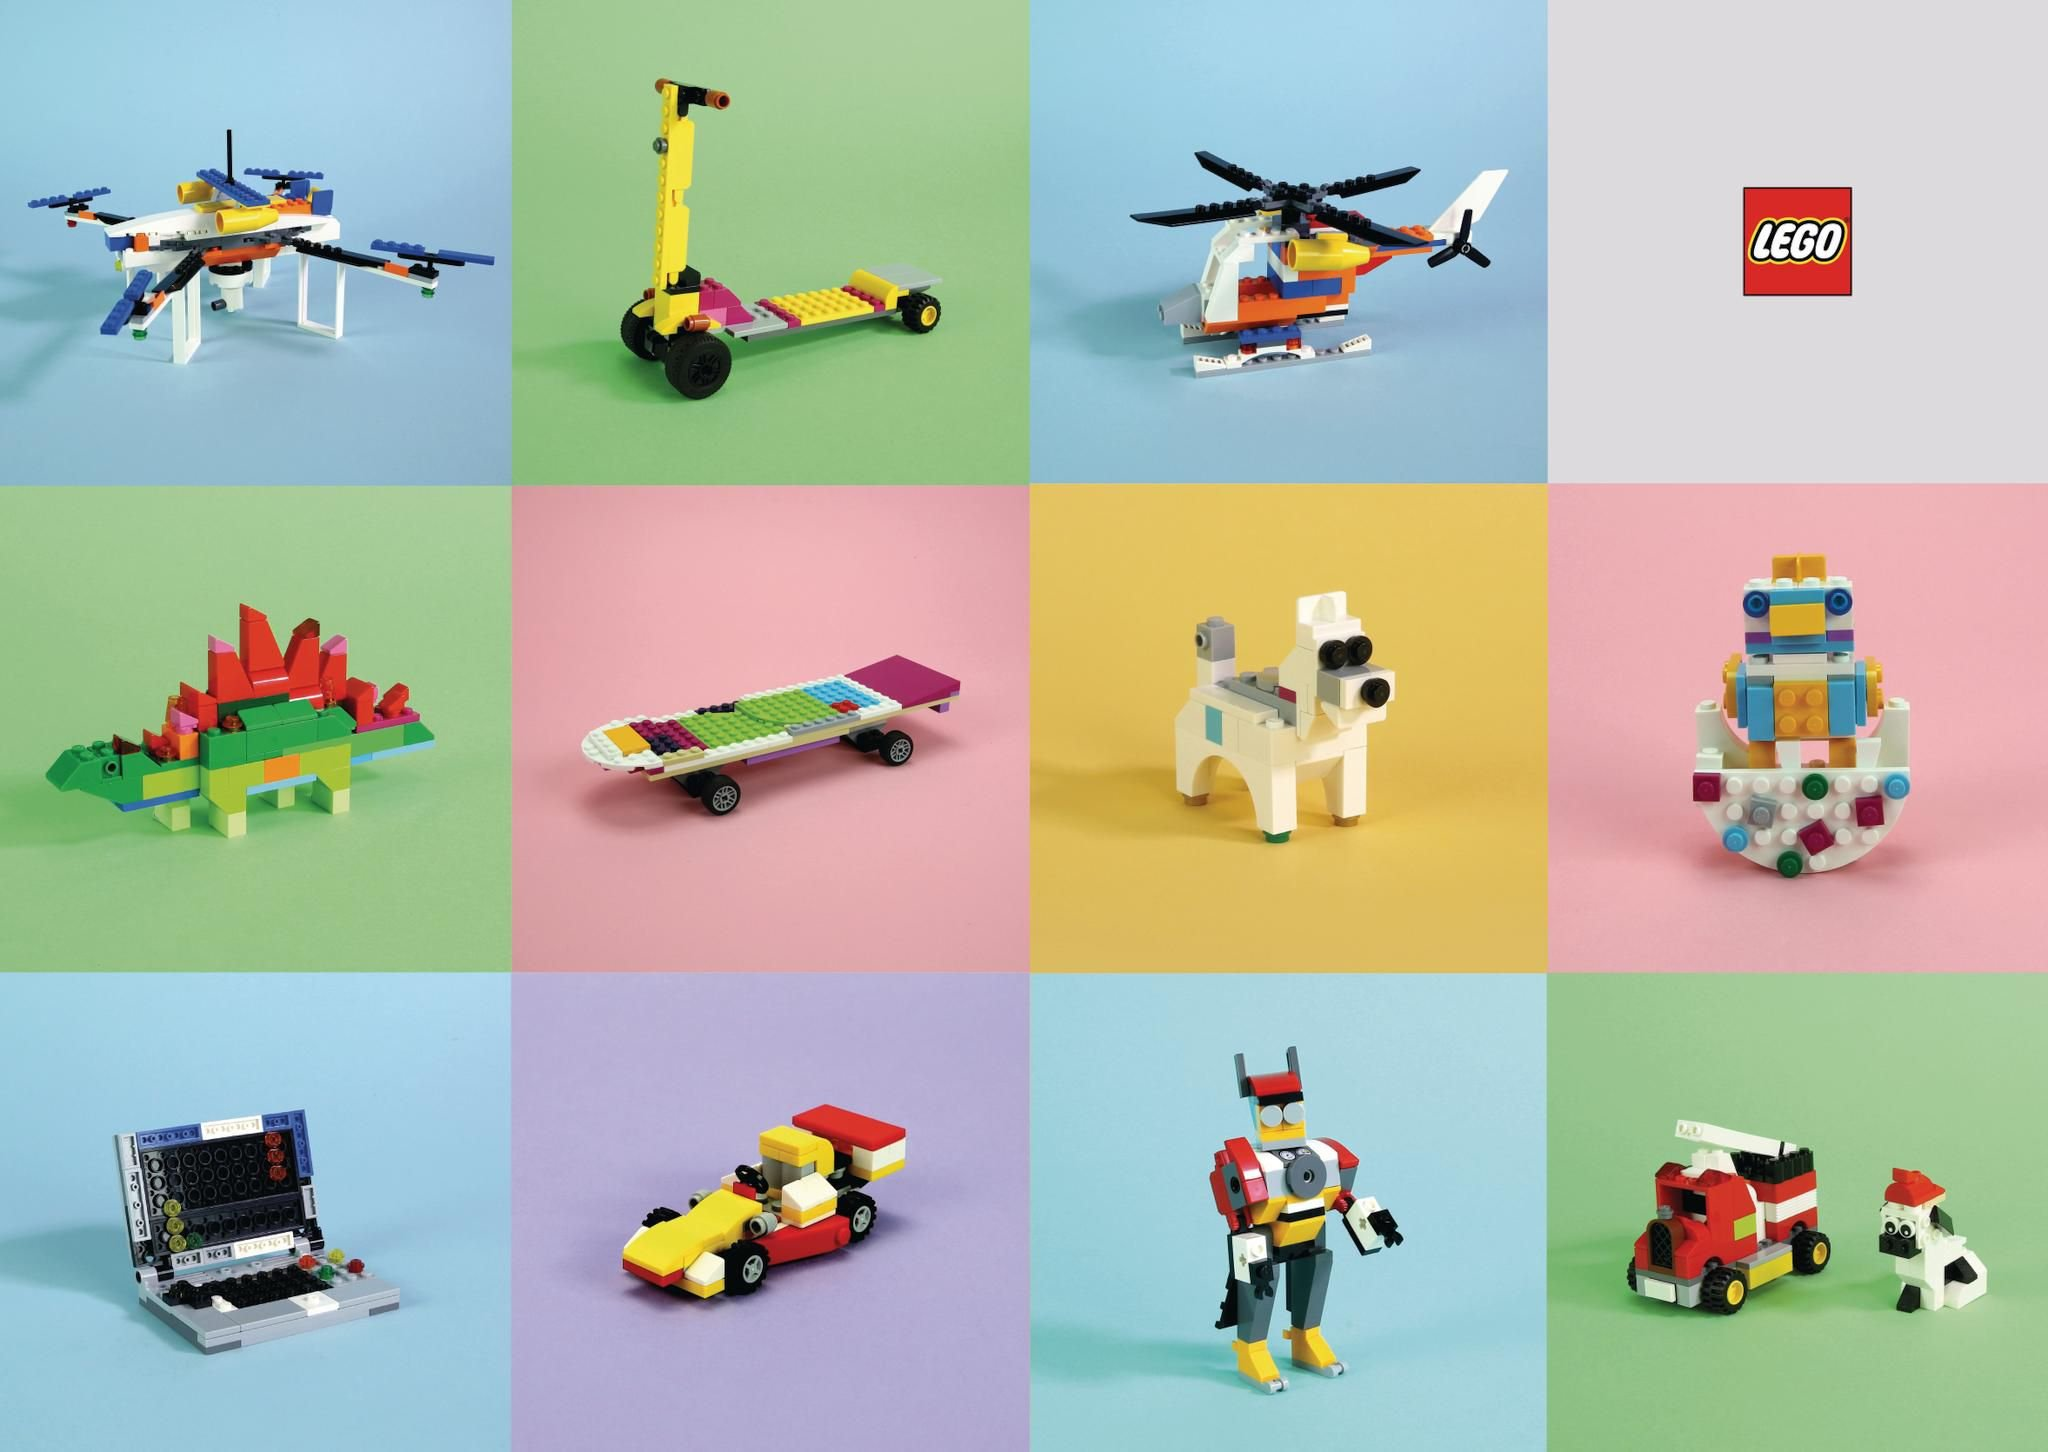 lego-making-the-list-supporting-images-1-2000-60255.jpg